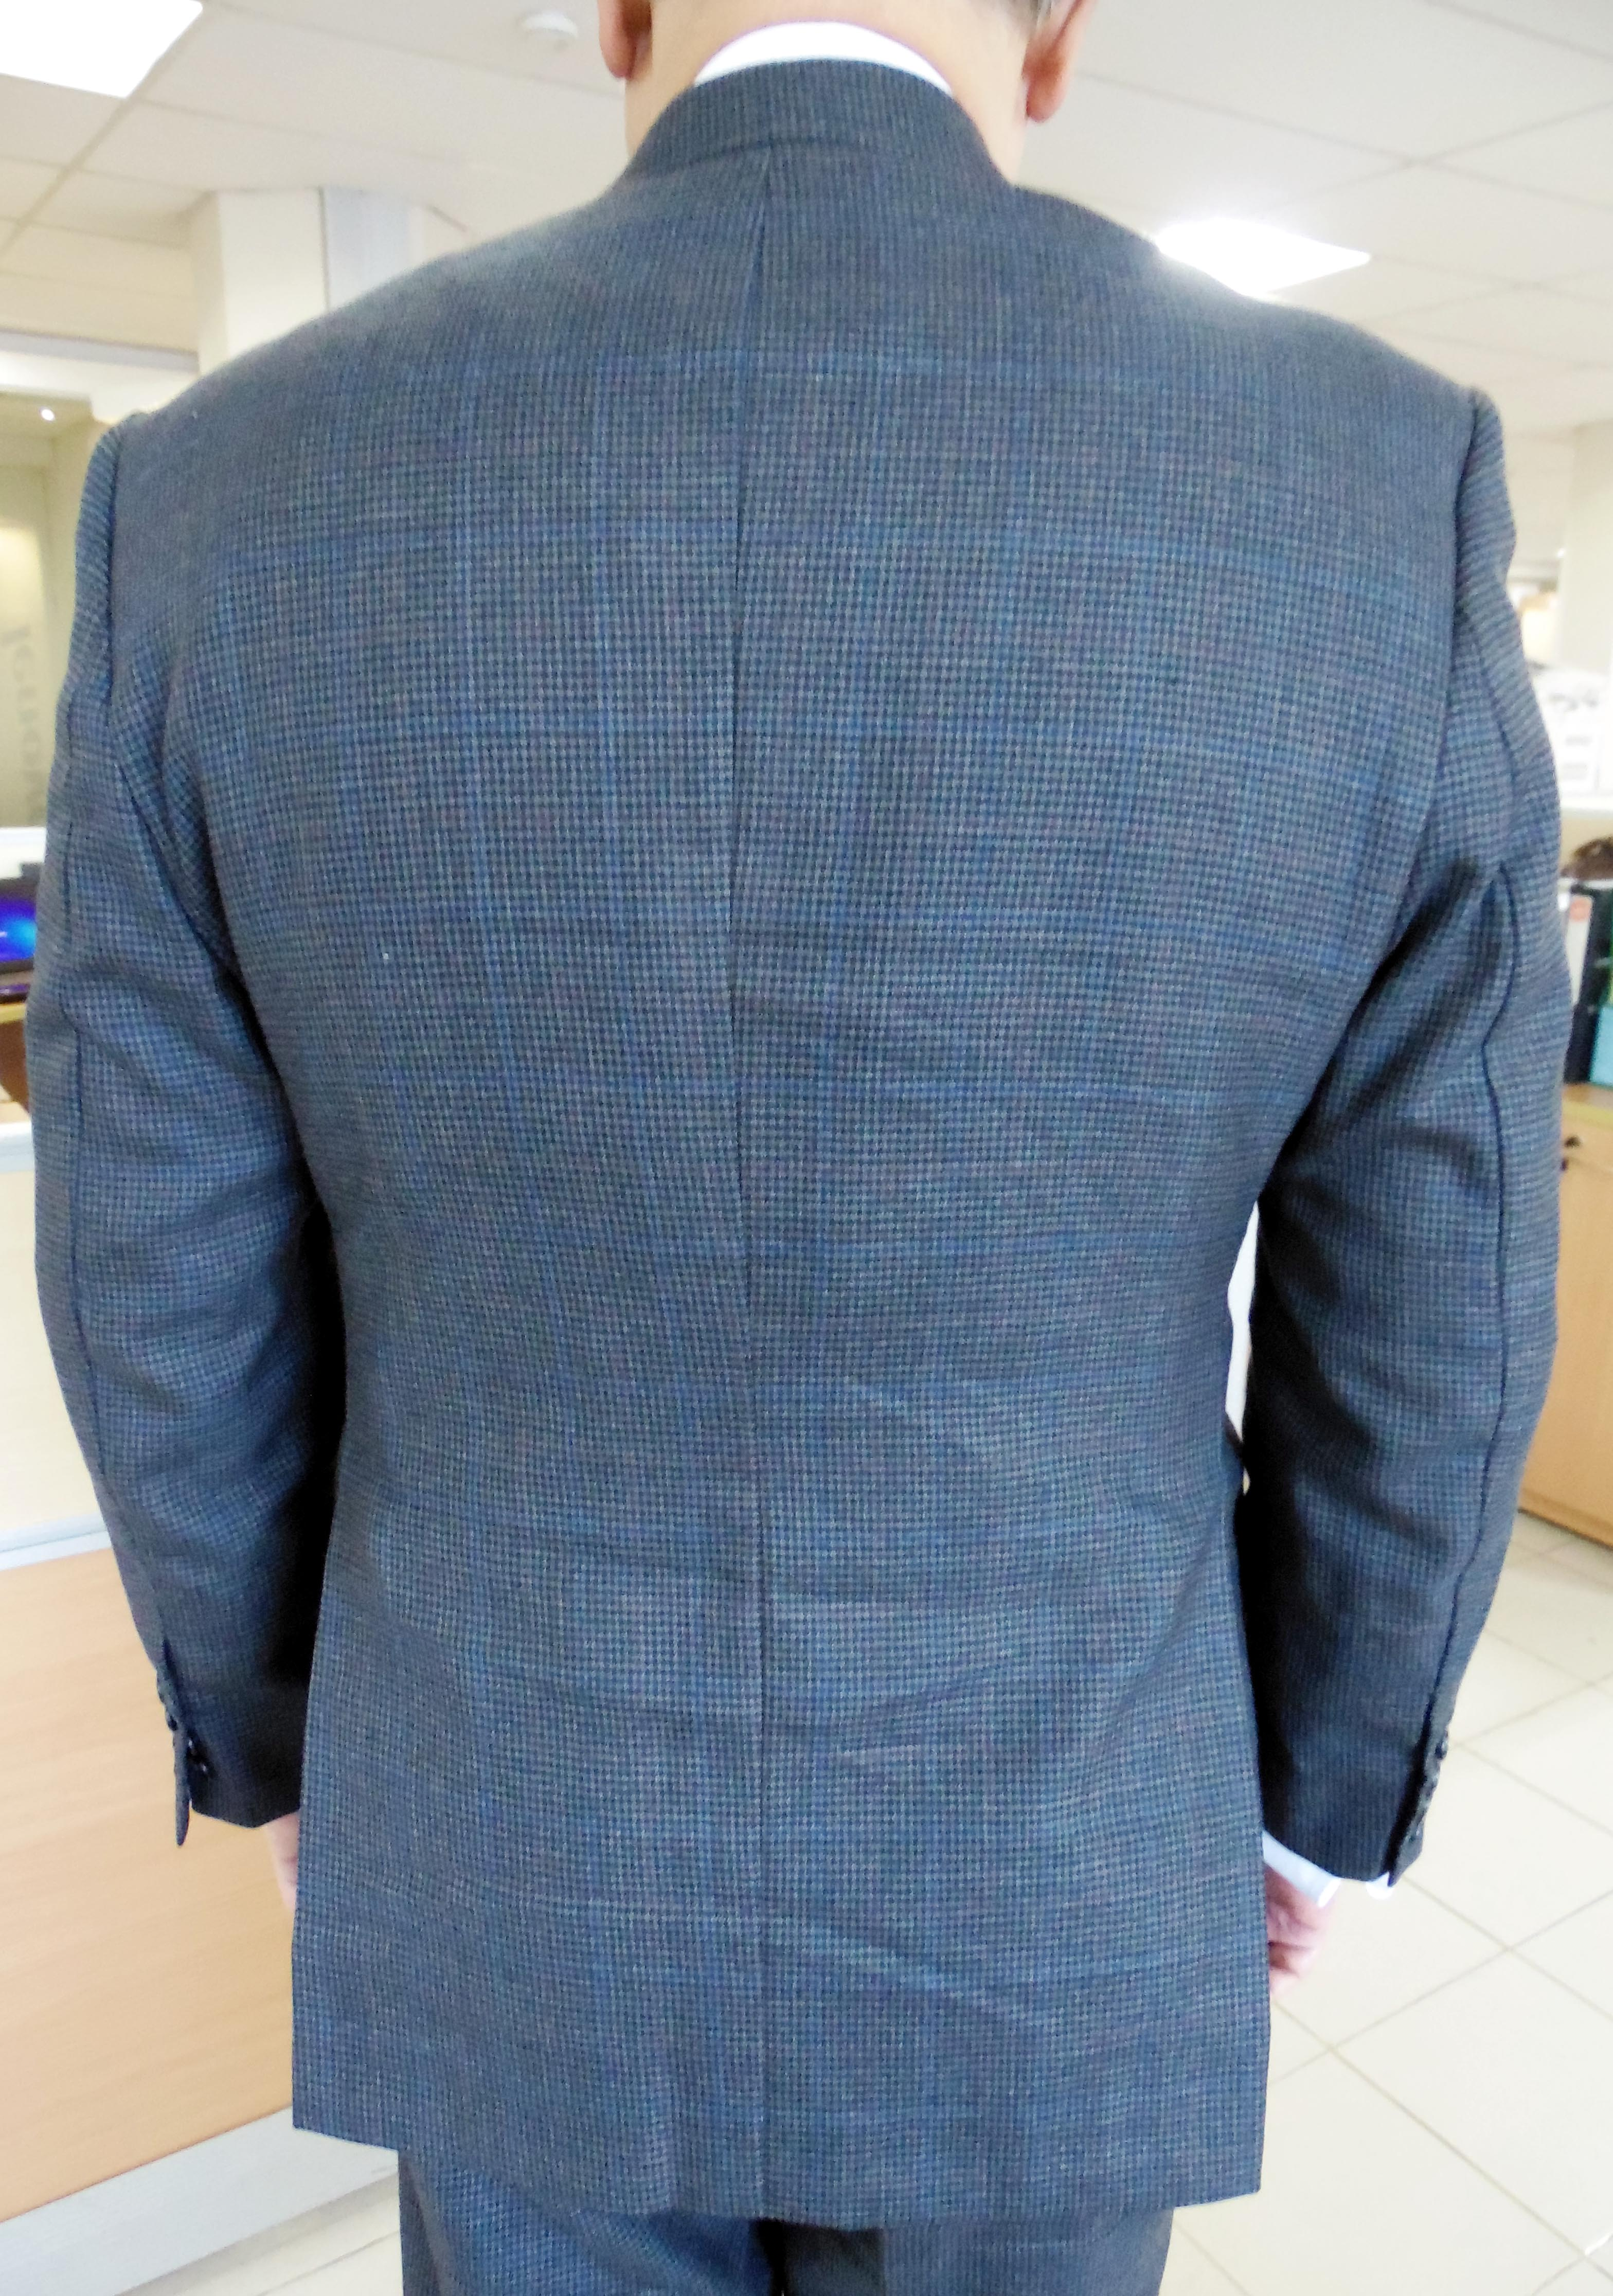 Dapper-Bespoke – This is a blog about men\'s style